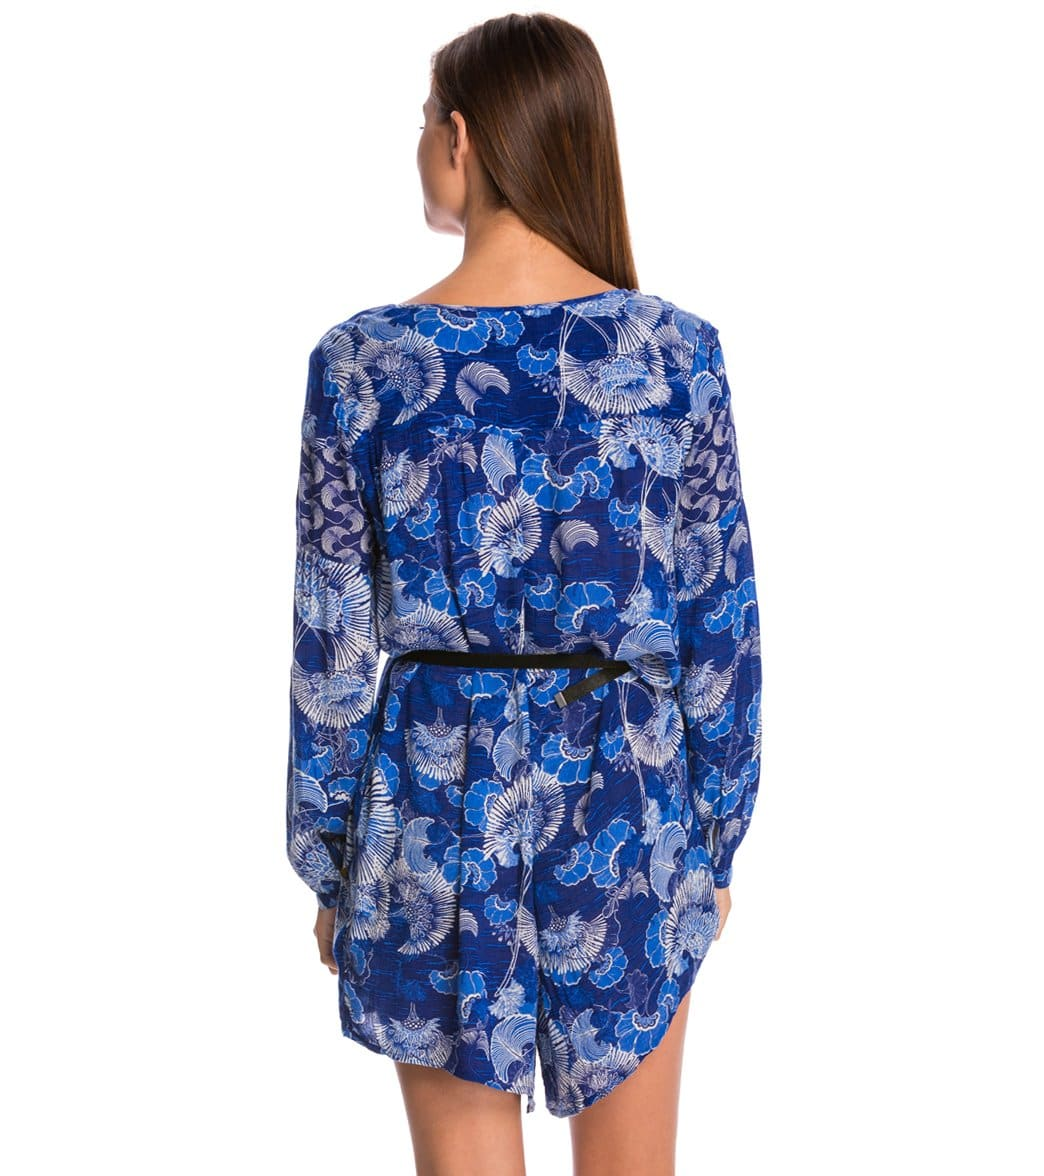 486ac41a953d Roxy Metric Match Romper at SwimOutlet.com - Free Shipping